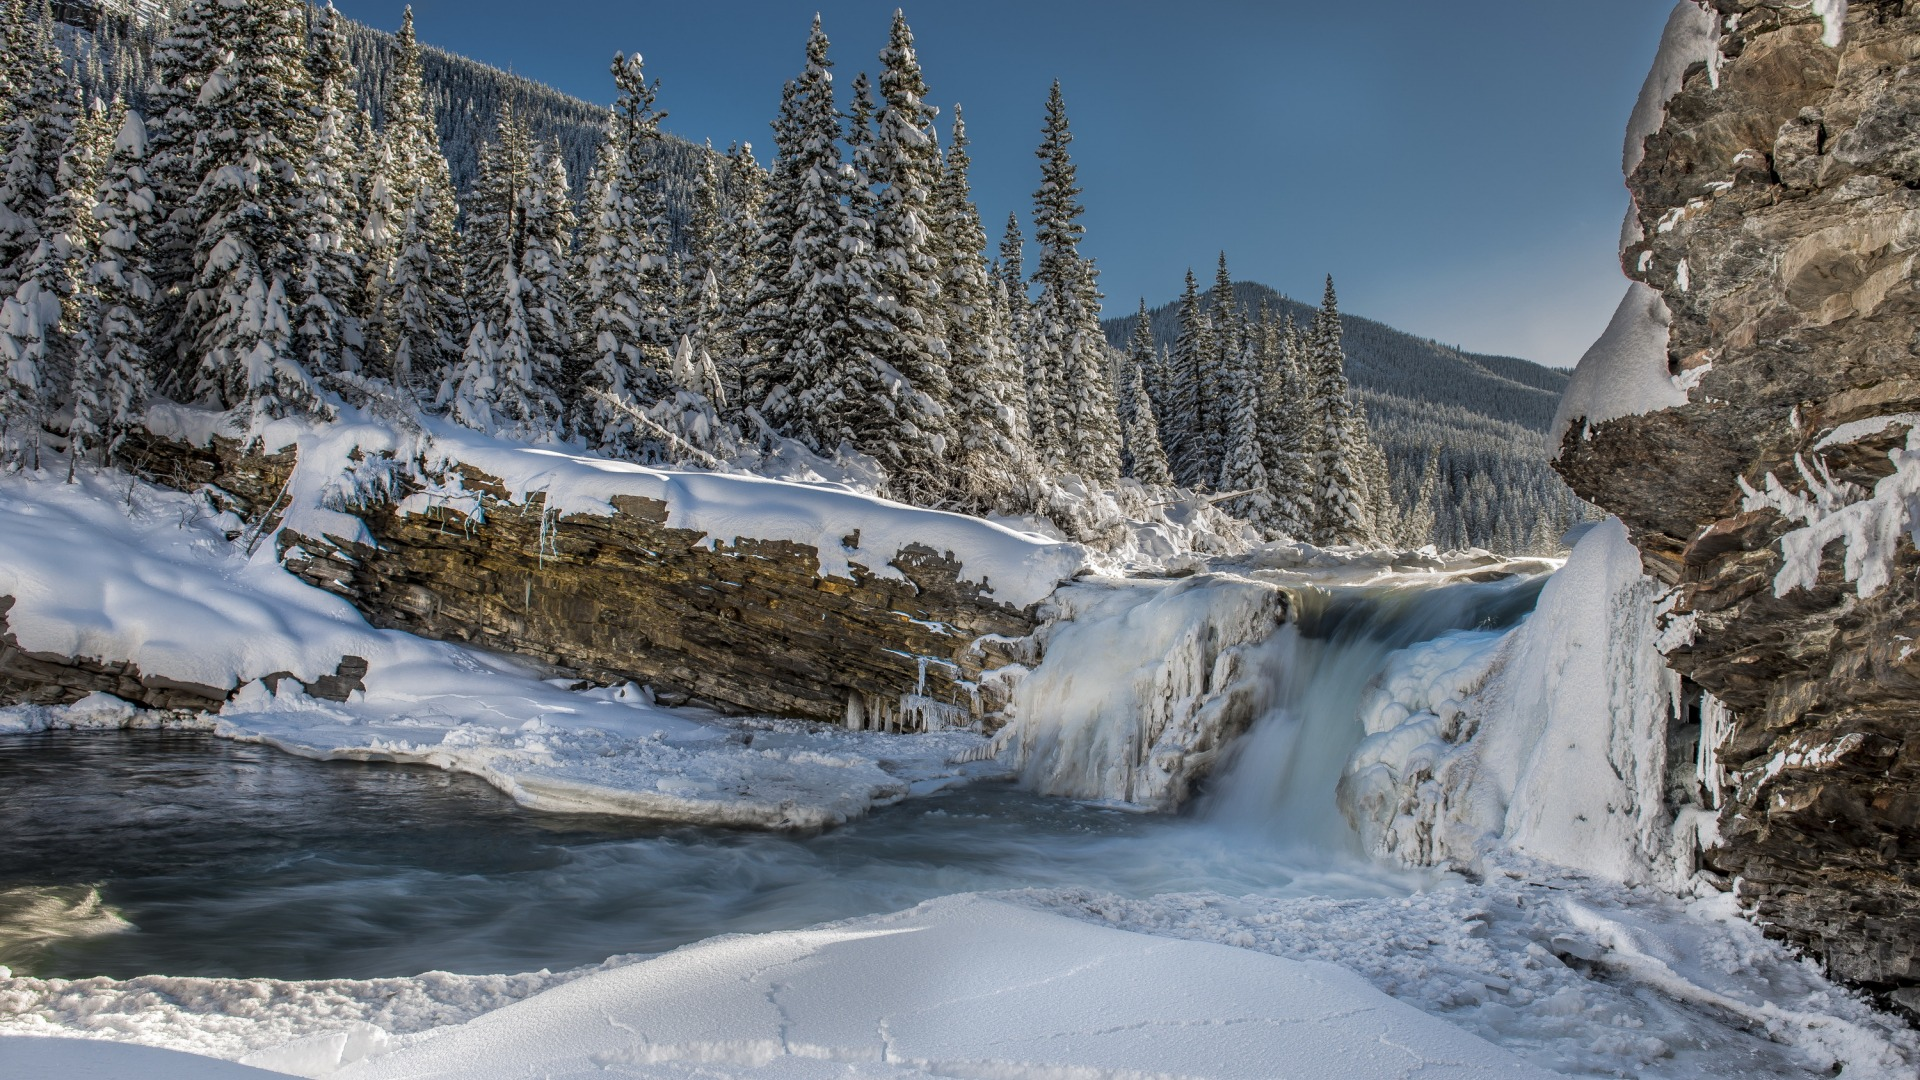 Download-ice-winter-forest-snow-mountains-river-tree-waterfall-section-Res-wallpaper-wpc9004482